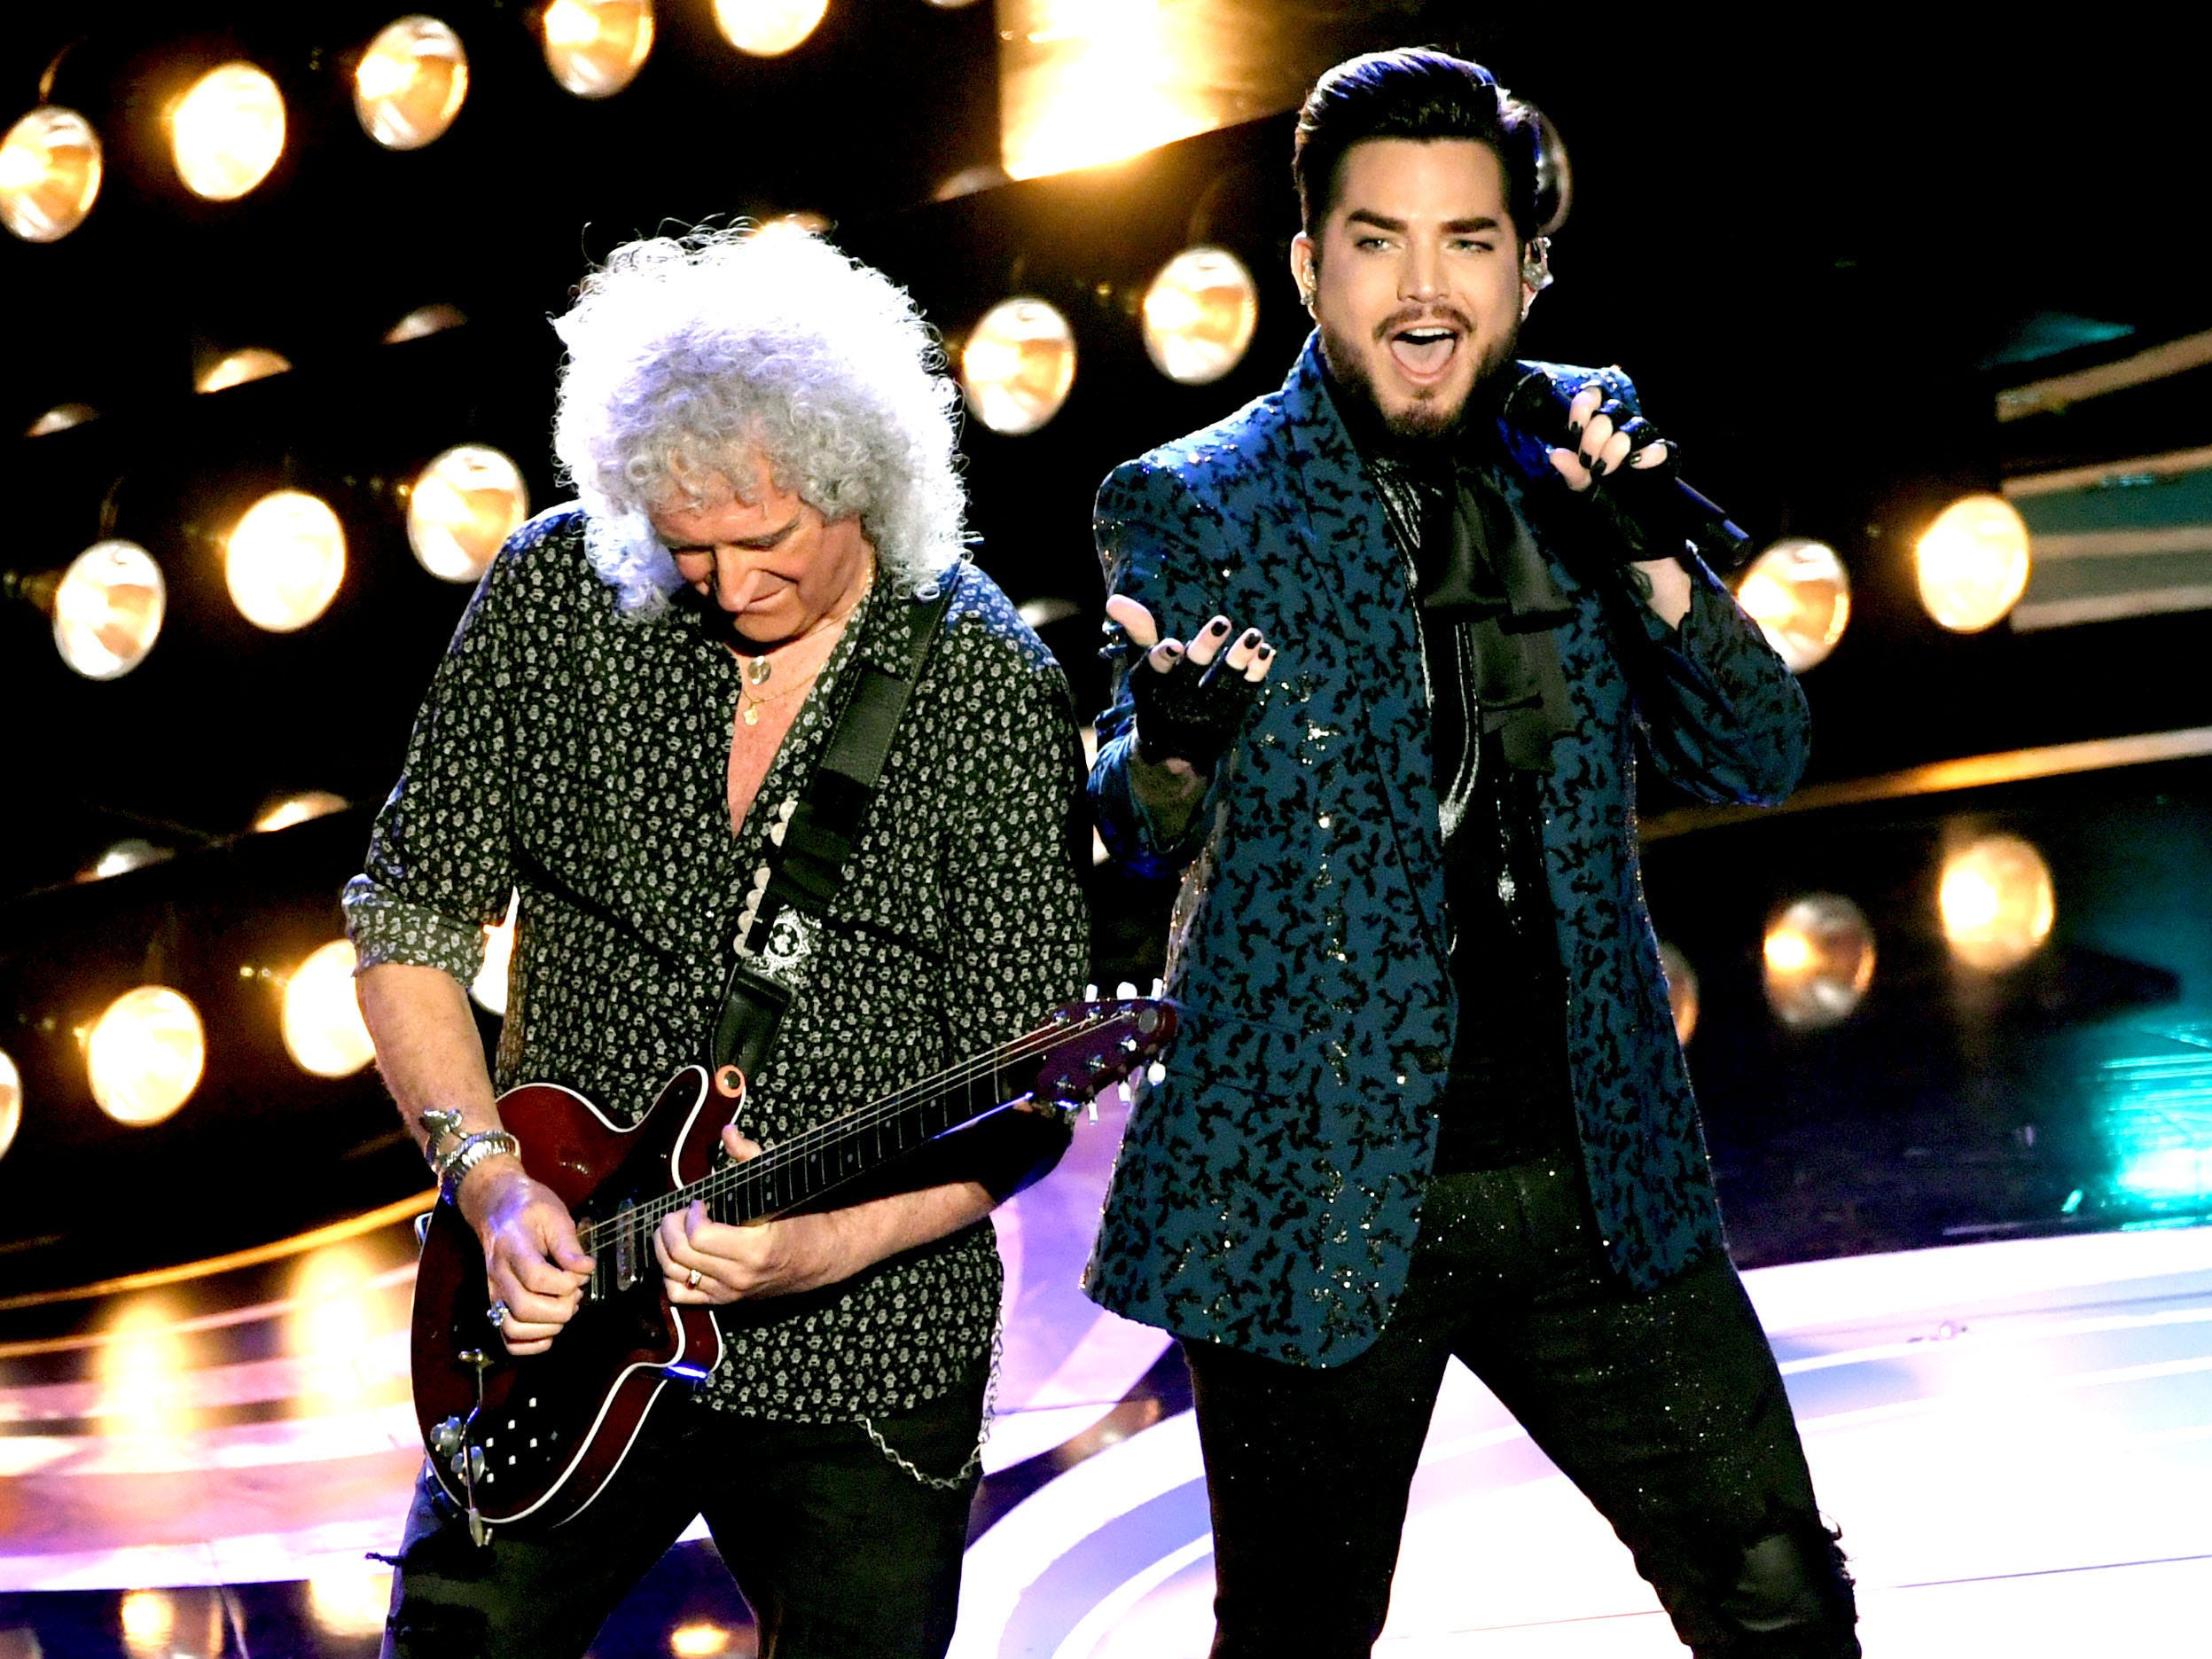 Opening act Queen and Adam Lambert had Oscar winners acting like kids at their first concert.